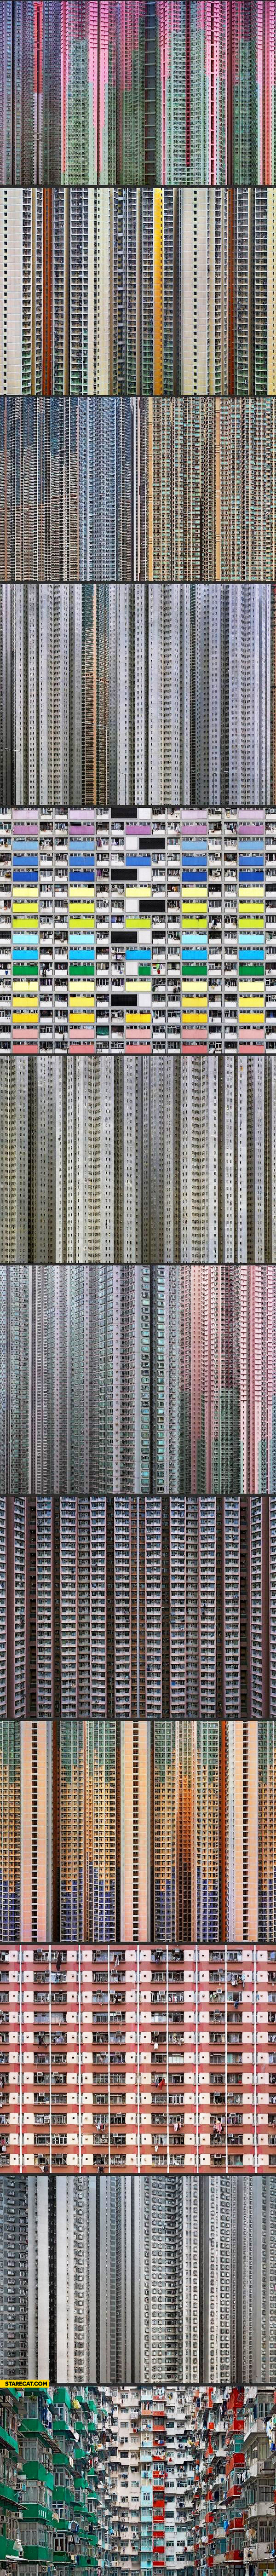 Hong Kong architecture